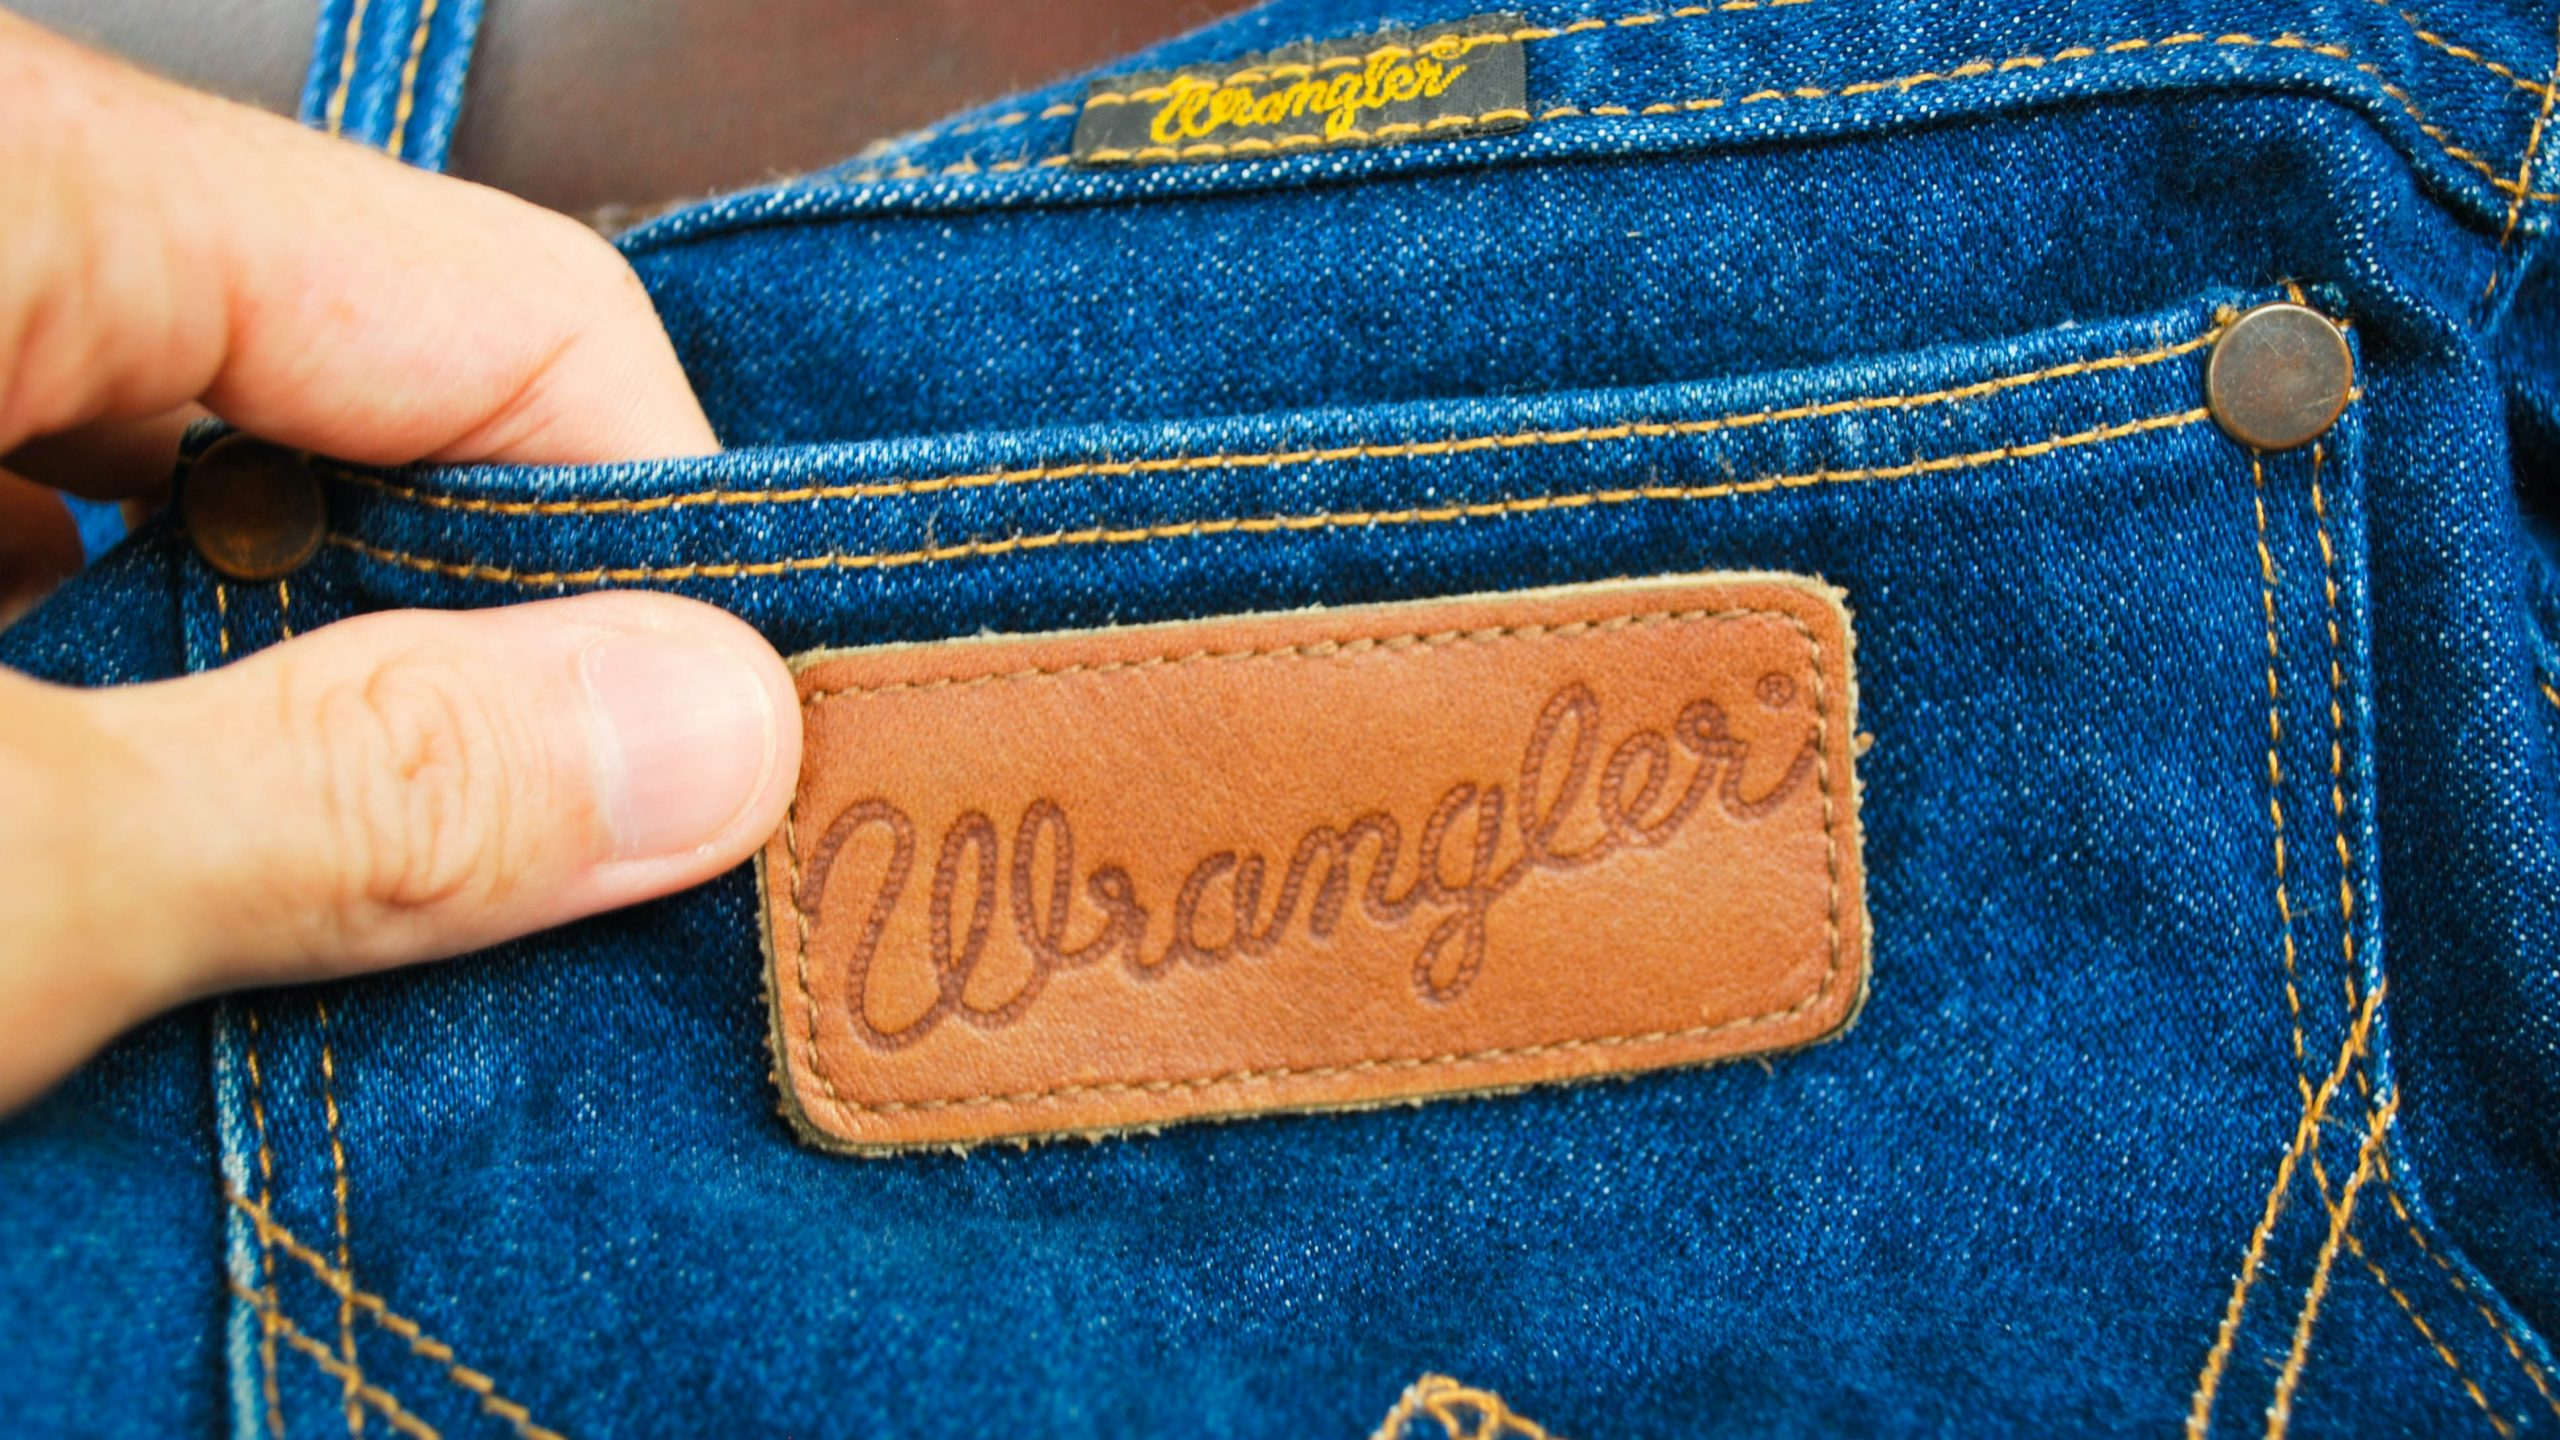 Wrangler ® sets optimistic new targets by 2030 to reduce water consumption